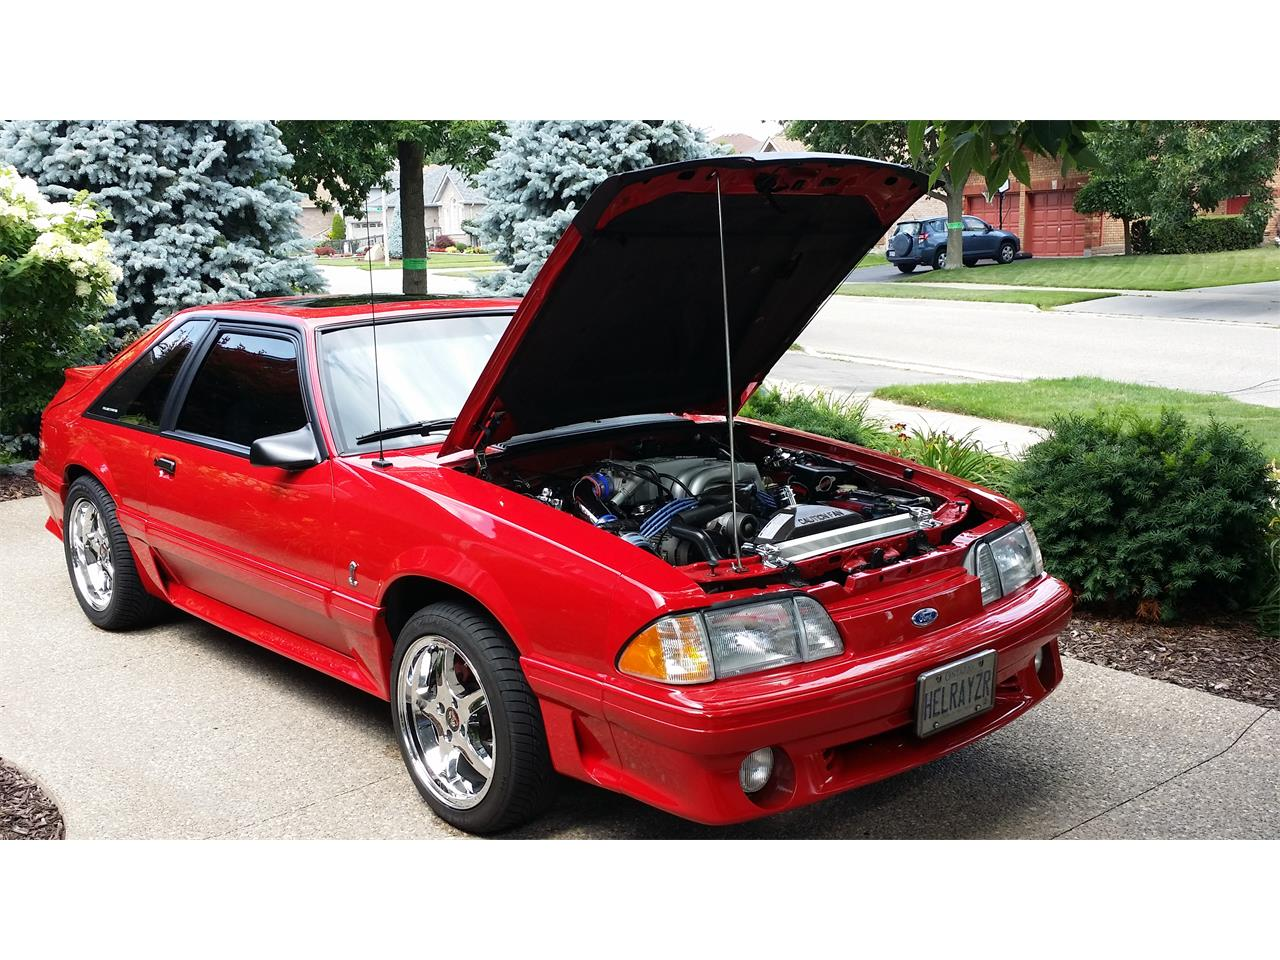 Large Picture of 1987 Mustang Cobra located in Oakville Ontario - $15,000.00 - PSFC